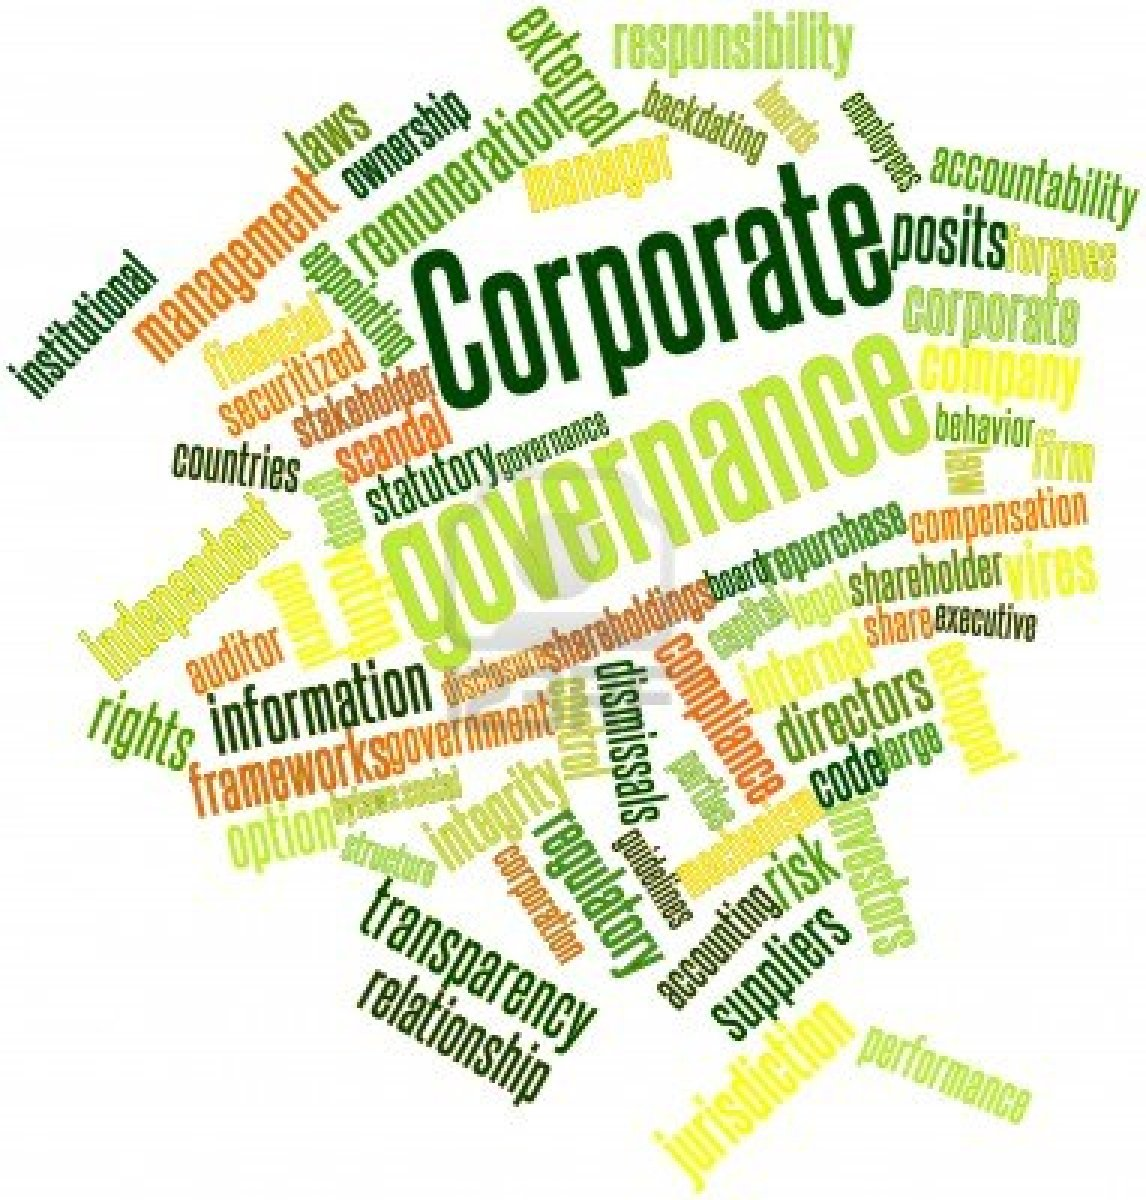 business ethics and corporate governance question 2 what is the definition of corporate governance